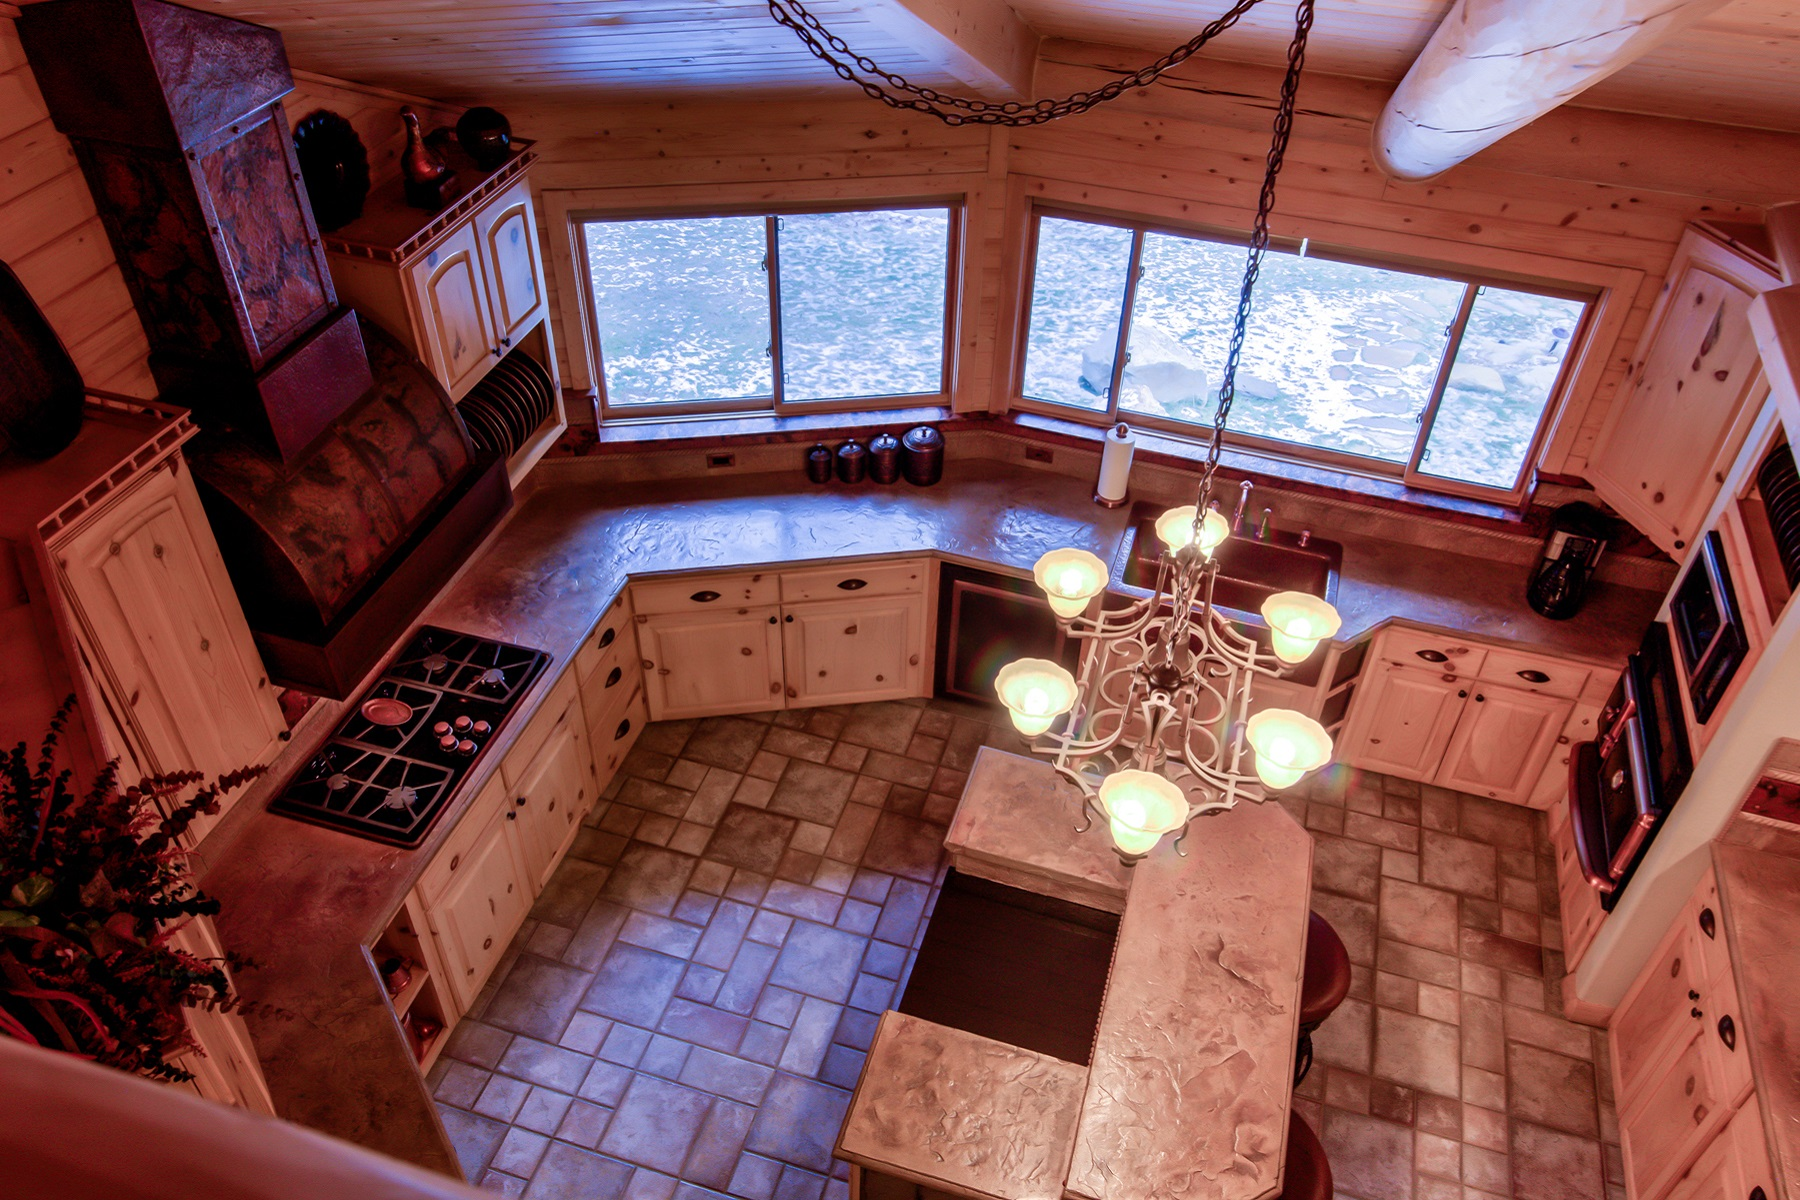 Additional photo for property listing at 20880 Whitetail Ridge Rd , Huson, MT 59846 20880  Whitetail Ridge Rd Huson, Montana 59846 United States